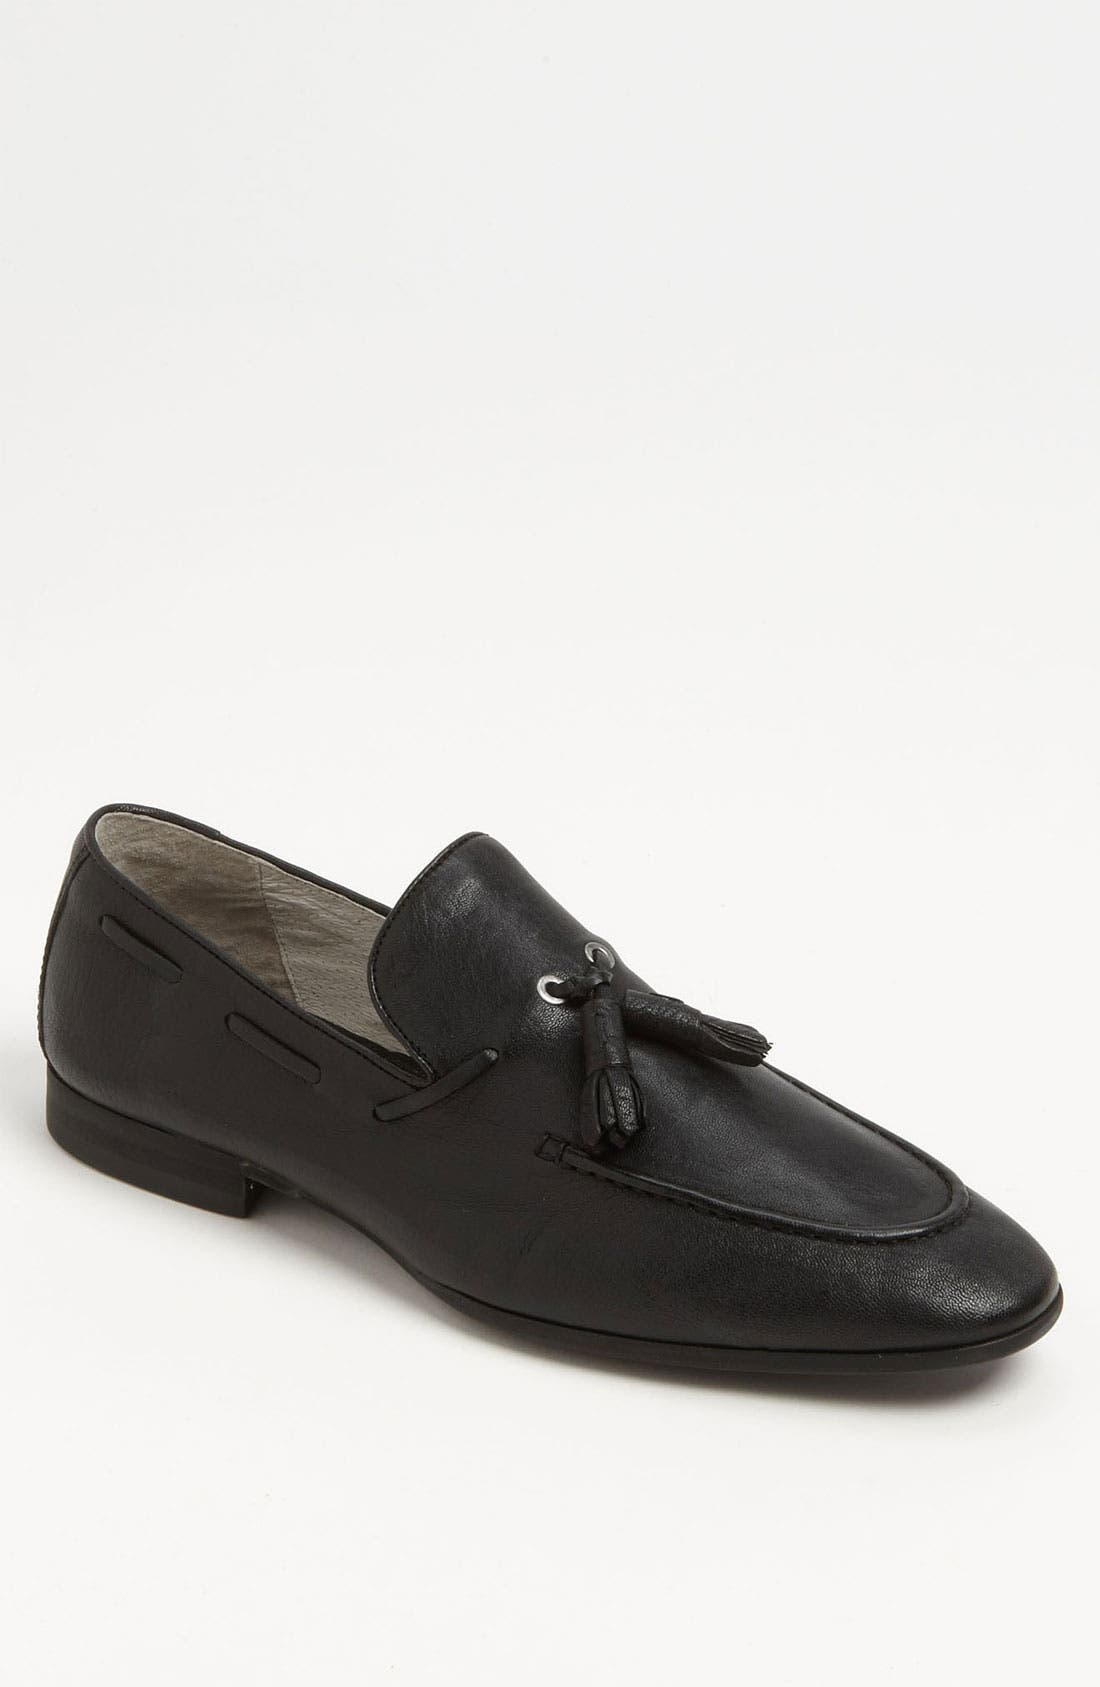 Main Image - Vince Camuto 'Castro' Leather Tassel Loafer